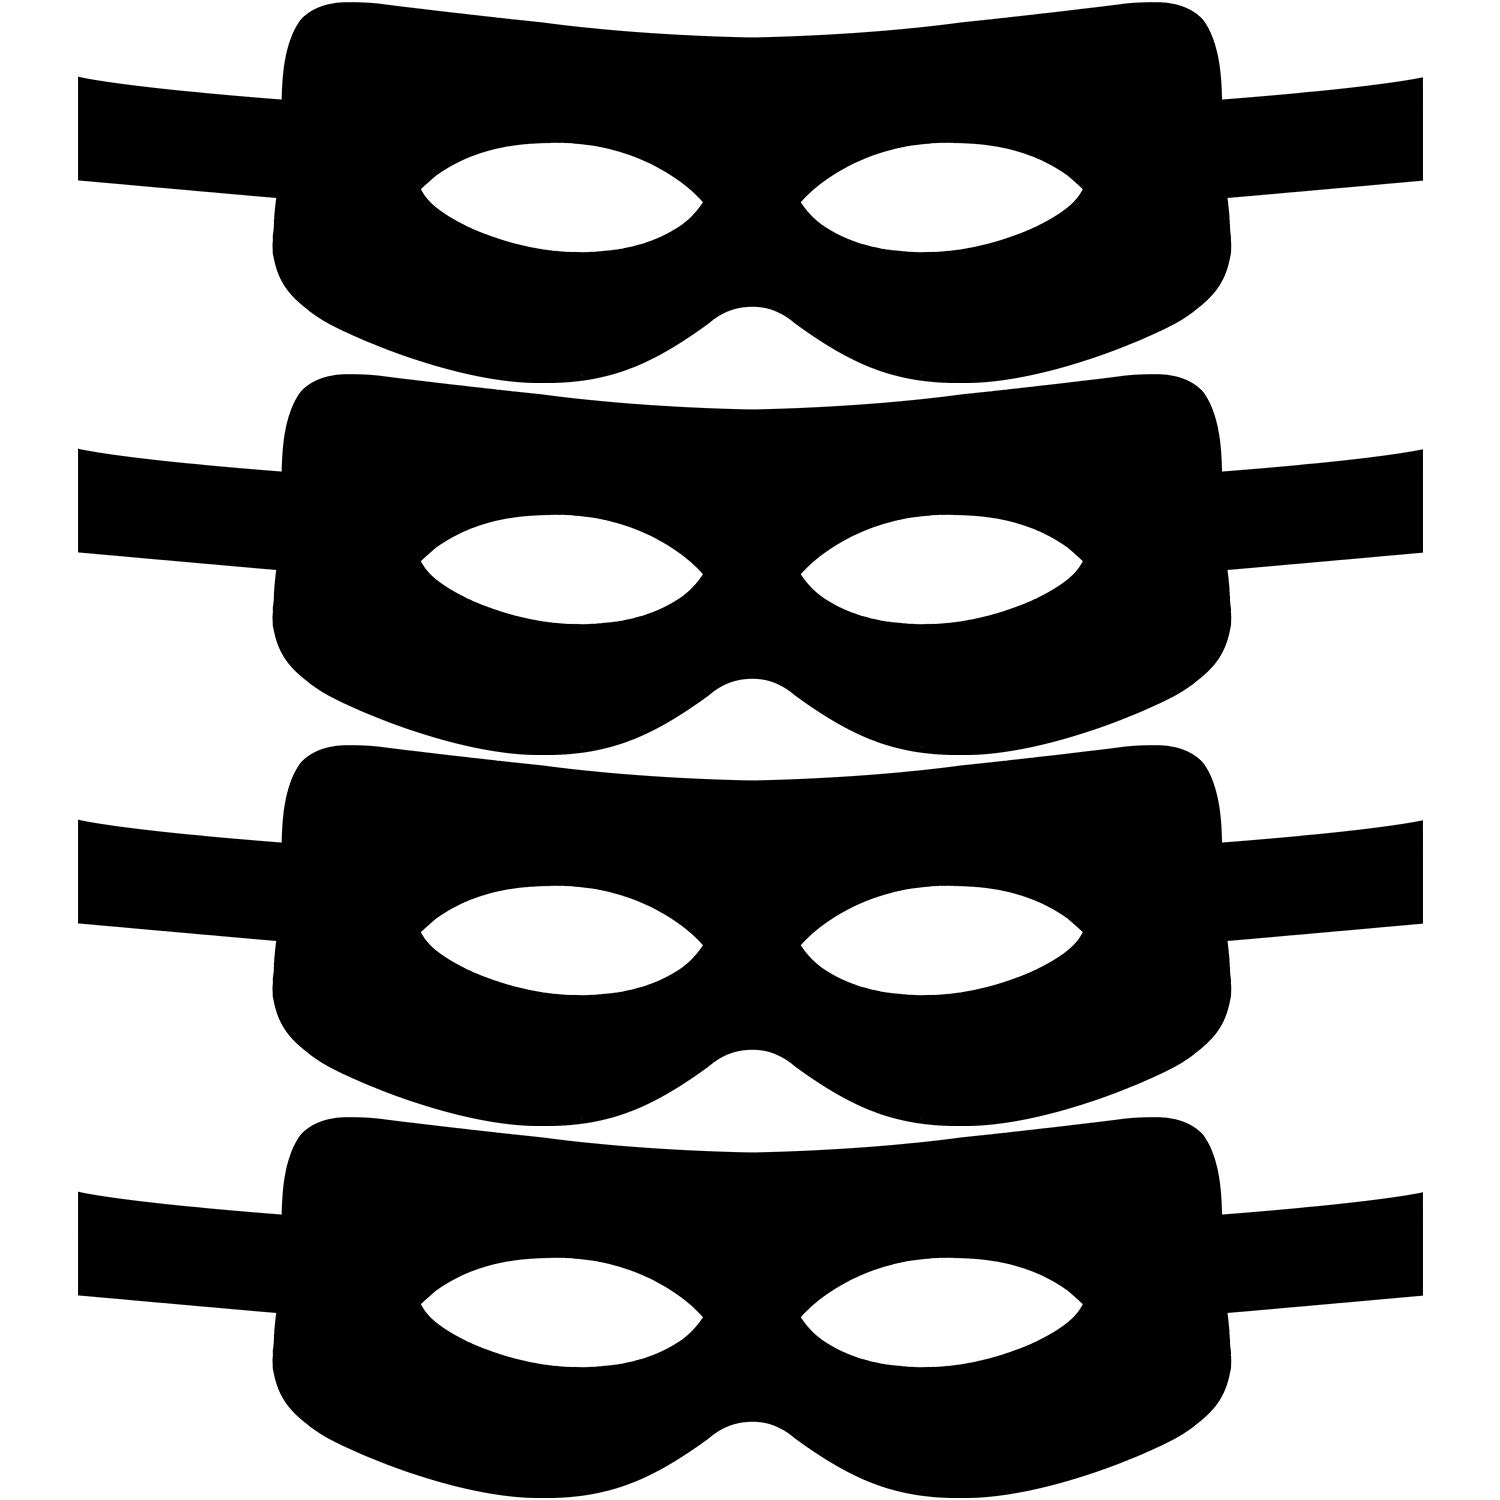 Jetec 4 Pack Cosplay Bandit Mask Half Mask with Ties for Halloween Themed Party Cosplay Costume Accessory